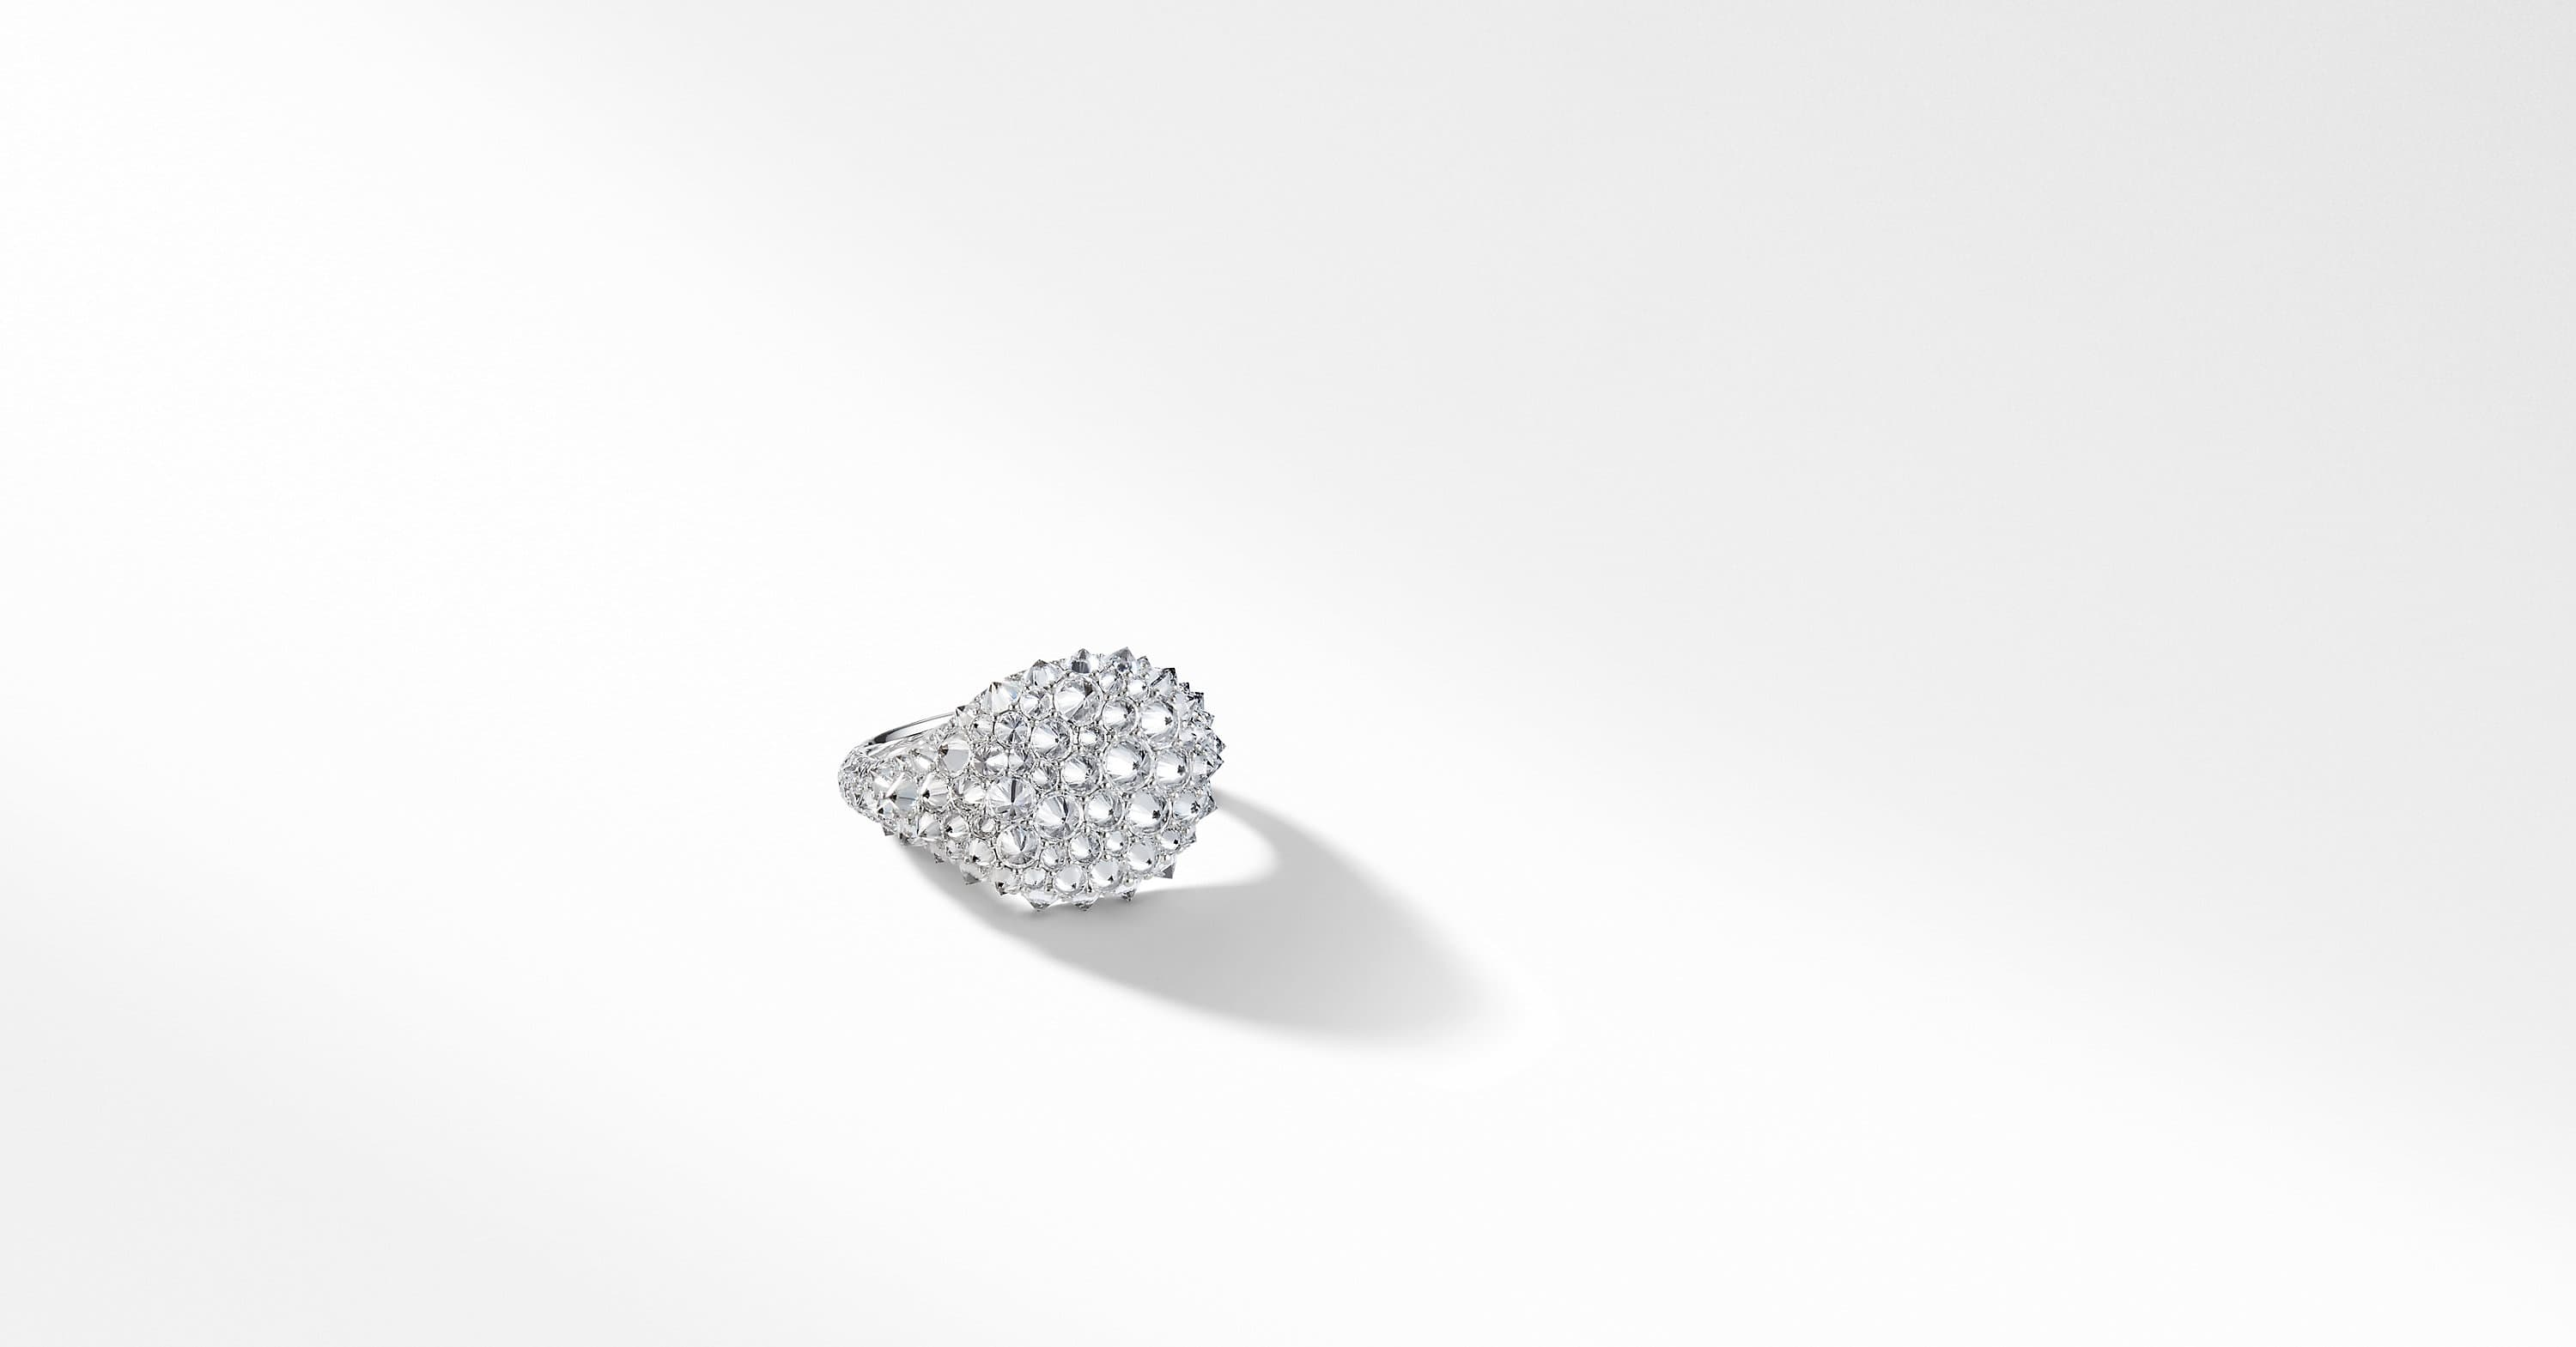 DY Signature Pinky Ring in 18K White Gold